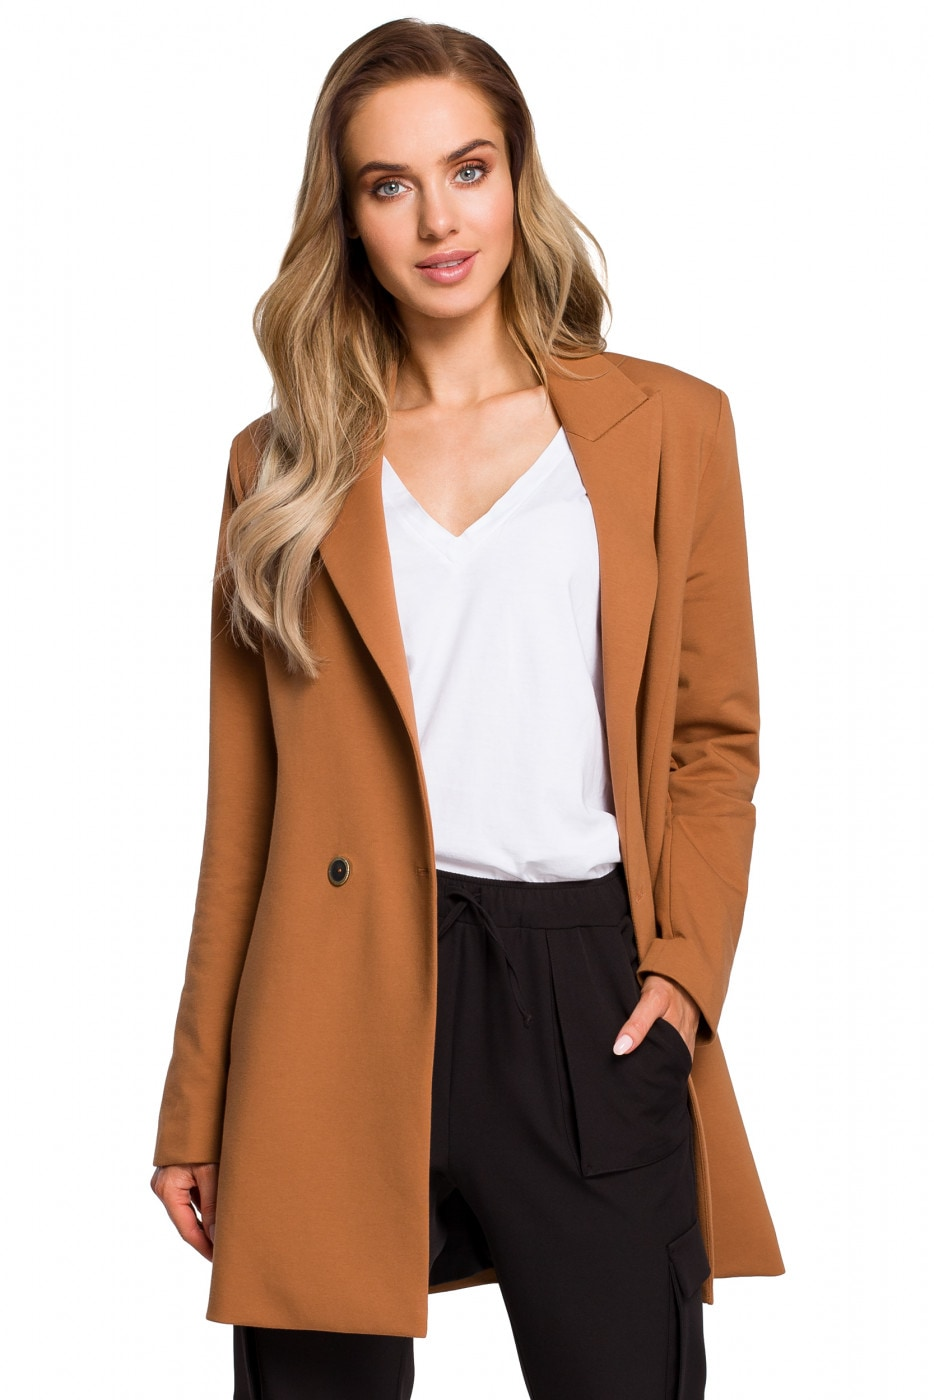 Made Of Emotion Woman's Jacket M429 Caramel